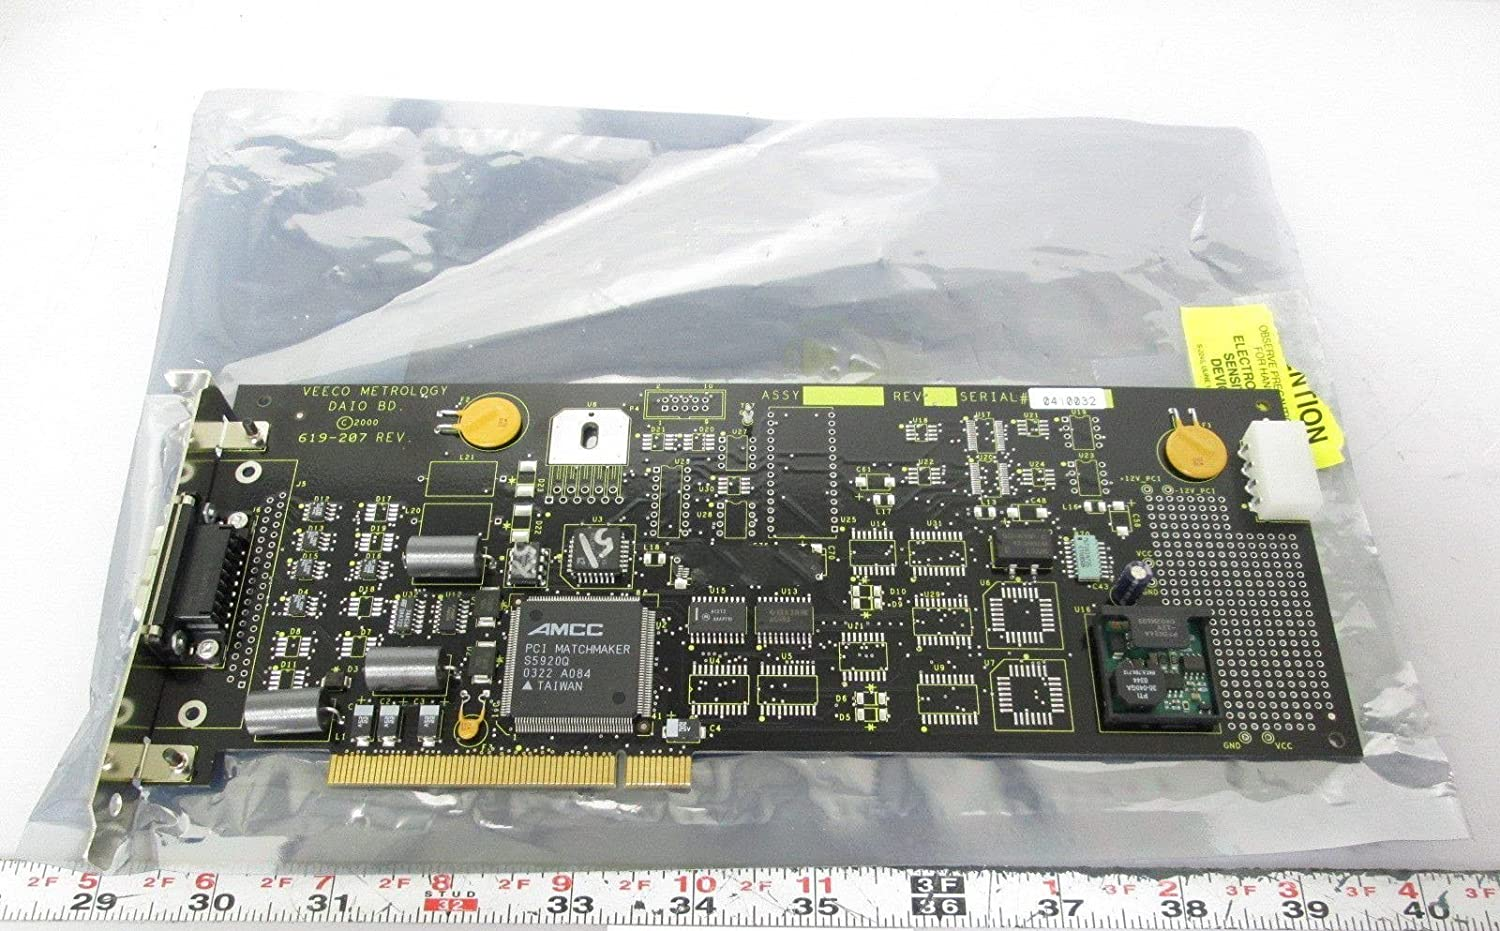 Veeco Metrology 619-207 DAIO Board for LED Lighting PCI Interface: Amazon.com: Industrial & Scientific